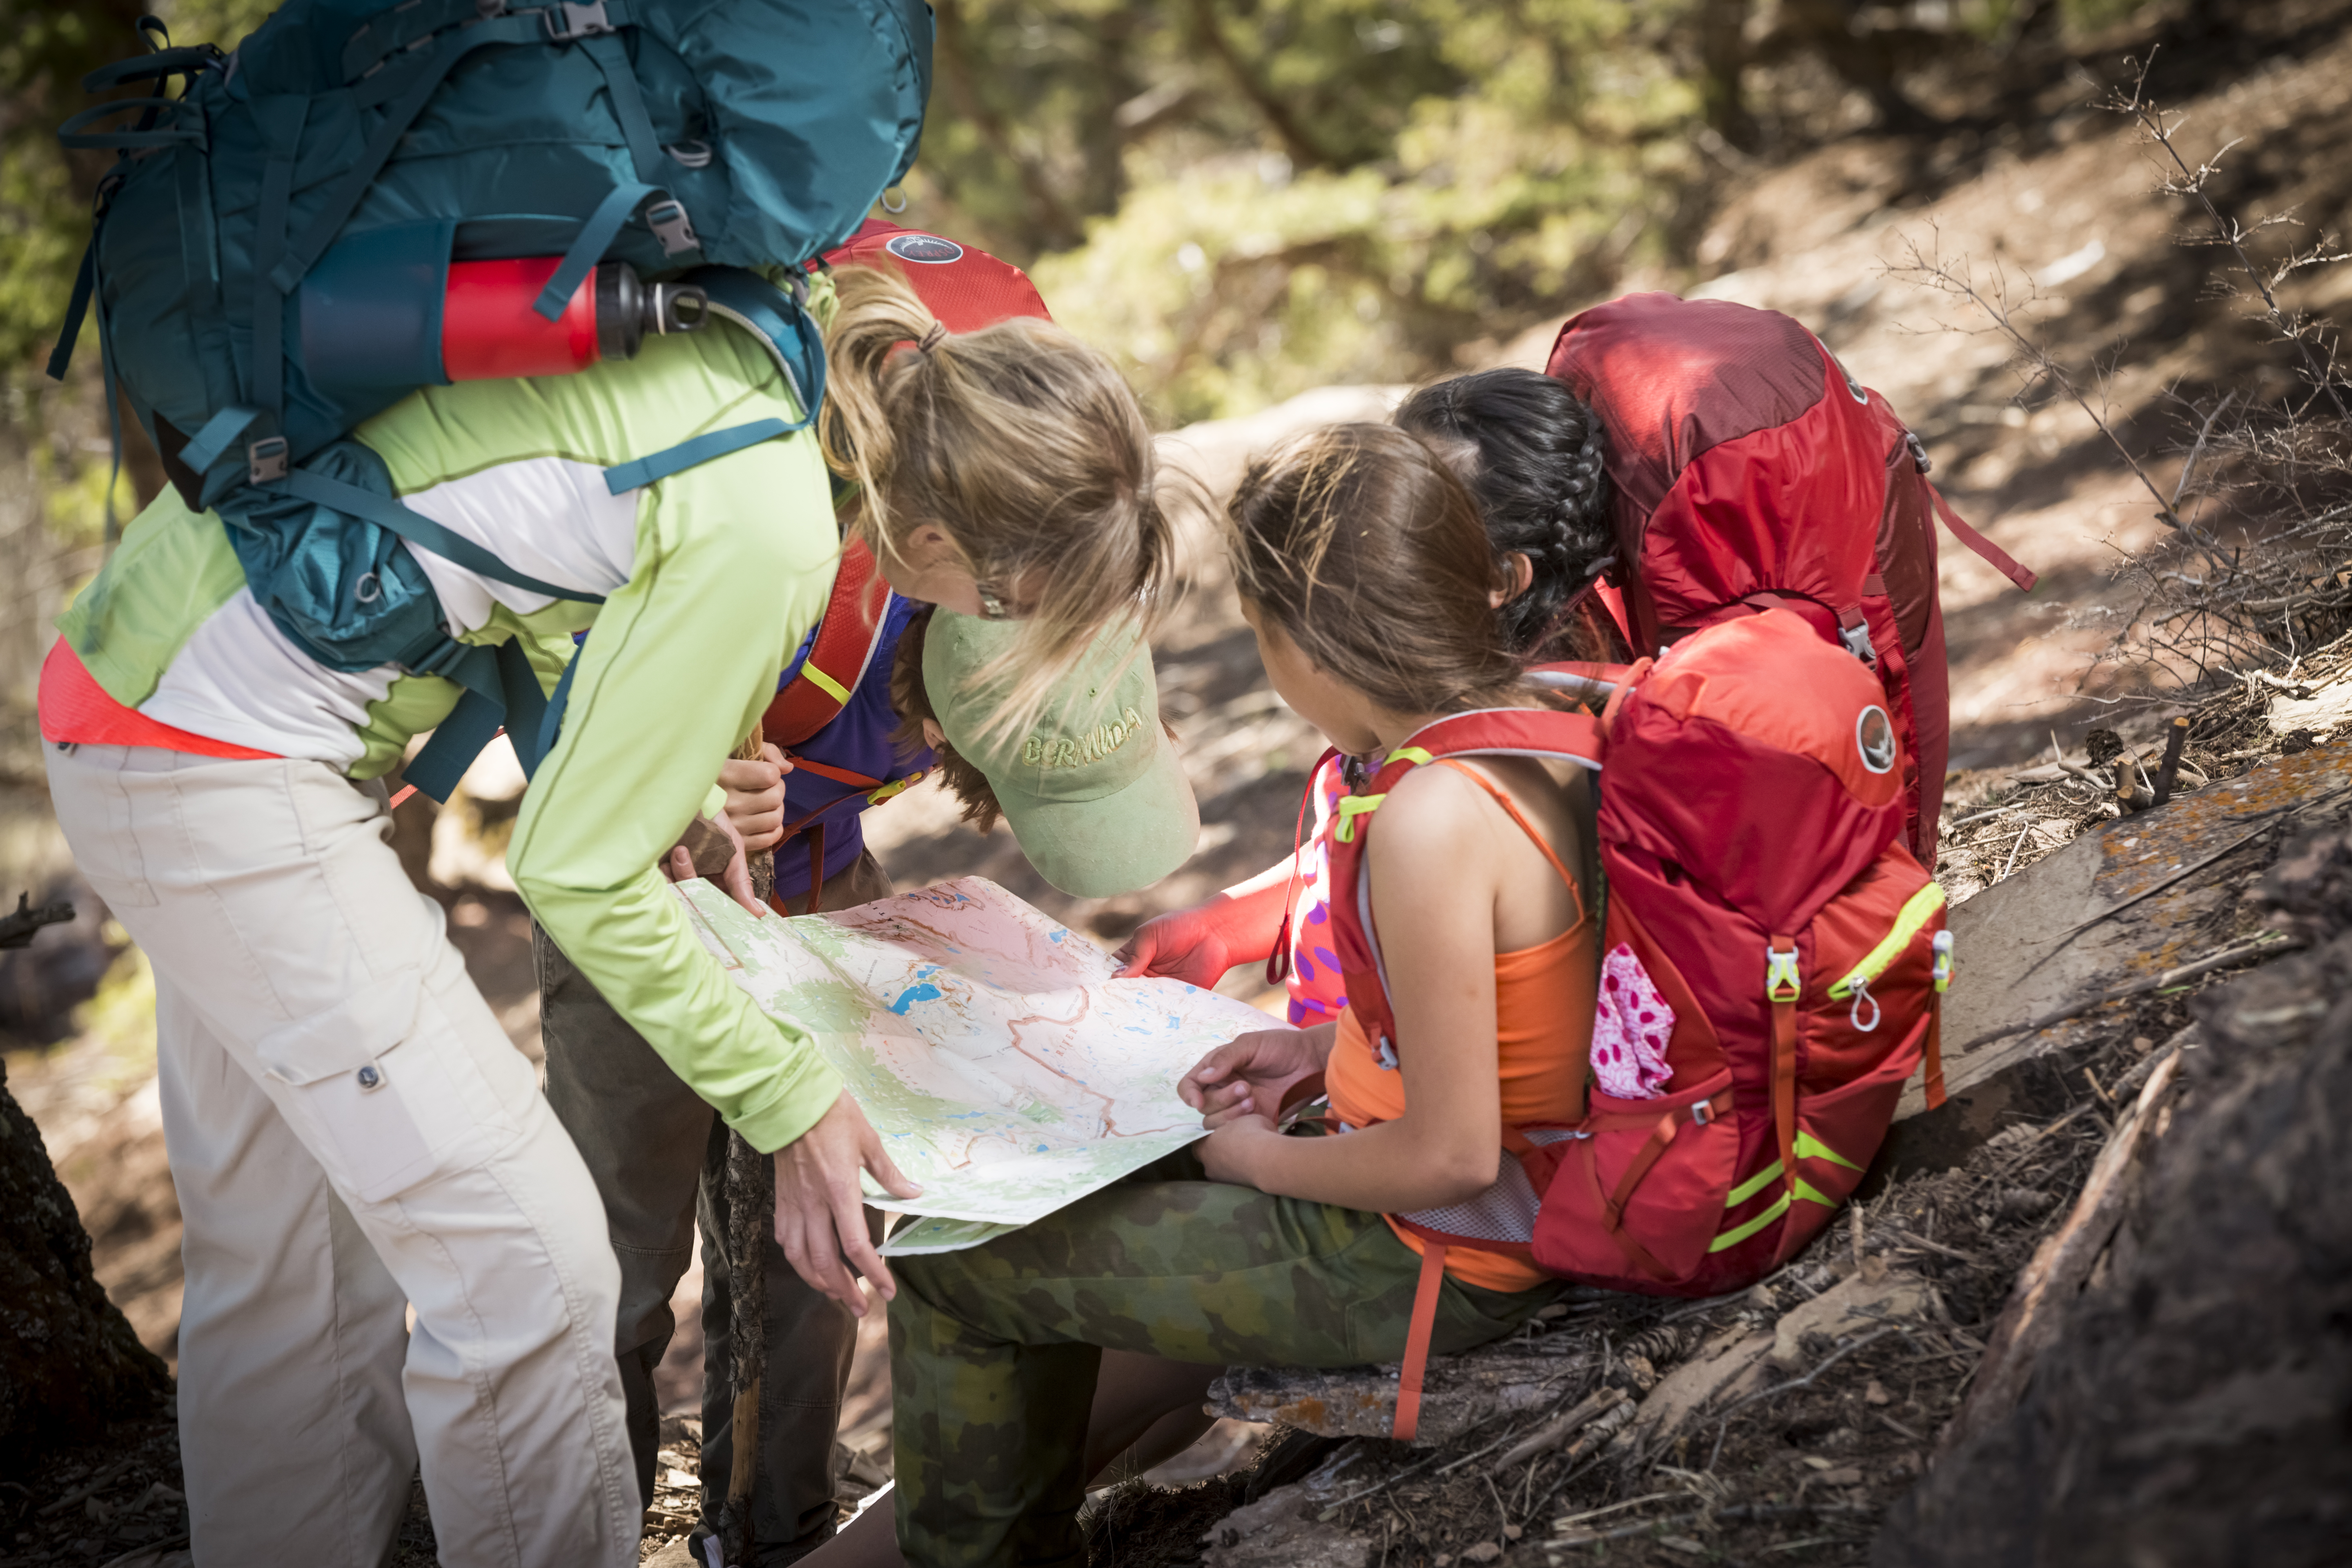 a family hiking looking at a map - representing Tips for Buying a Backpack